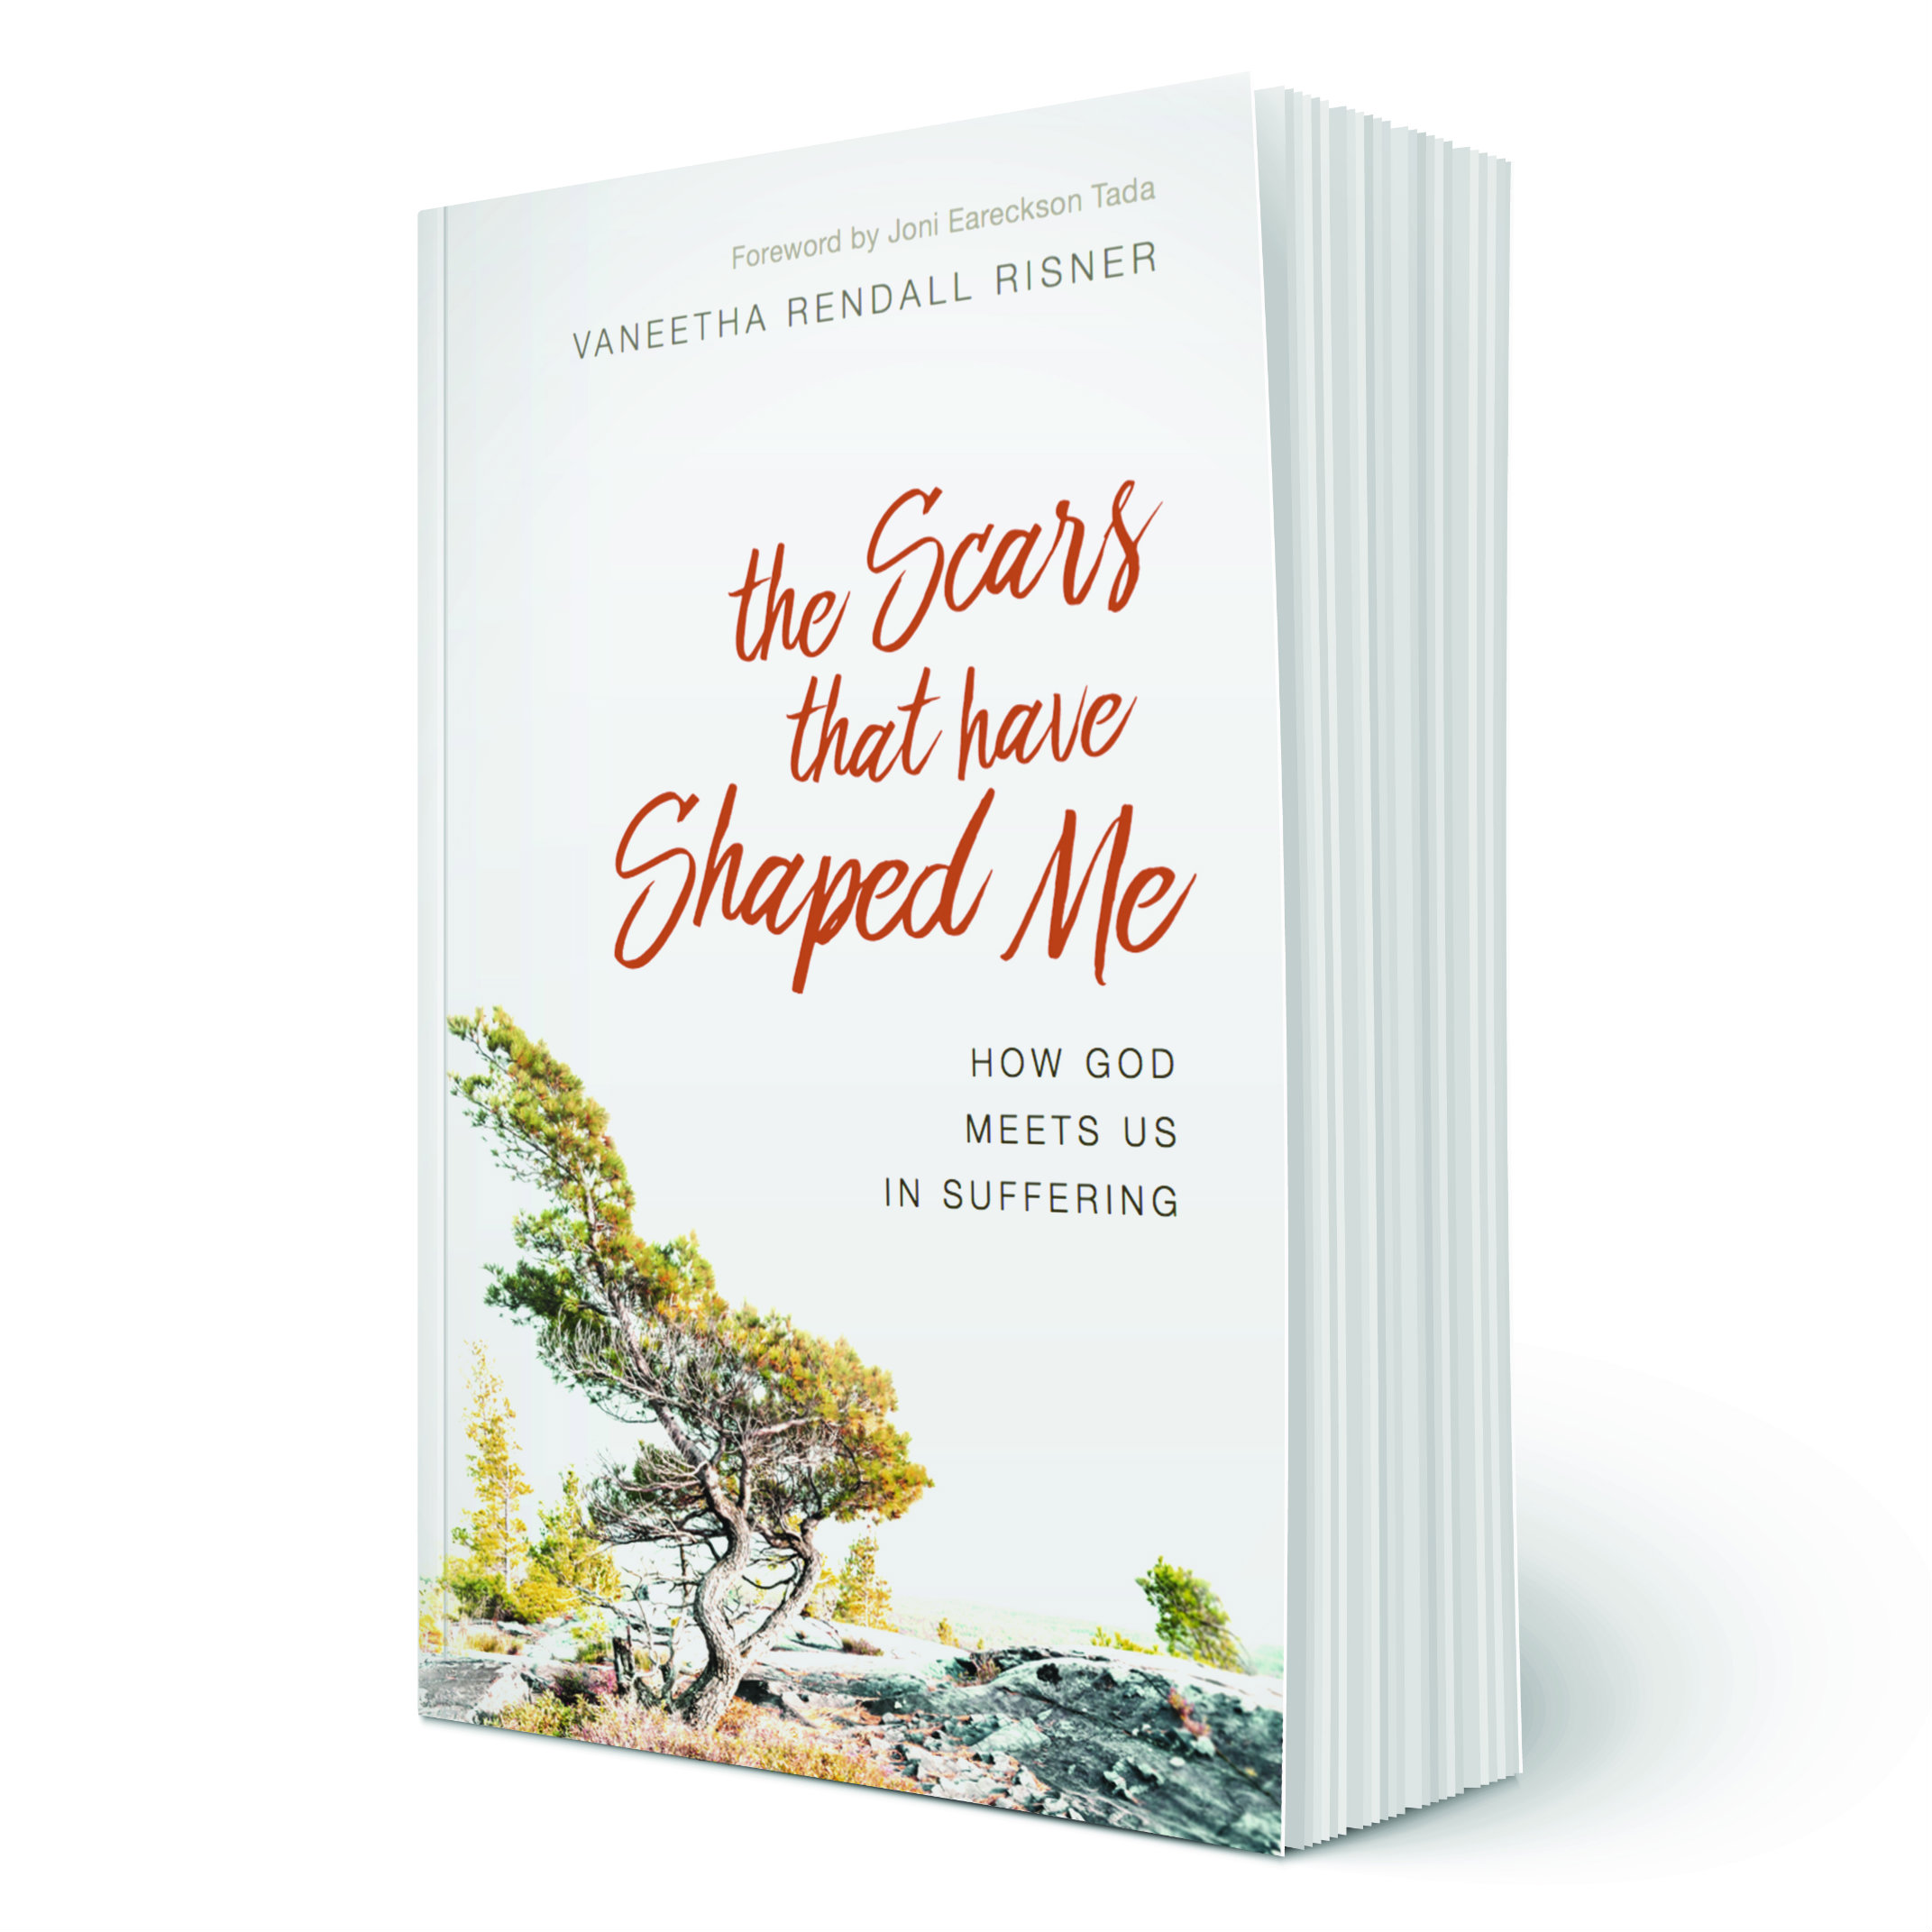 The Scares That Have Shaped Me Book Cover